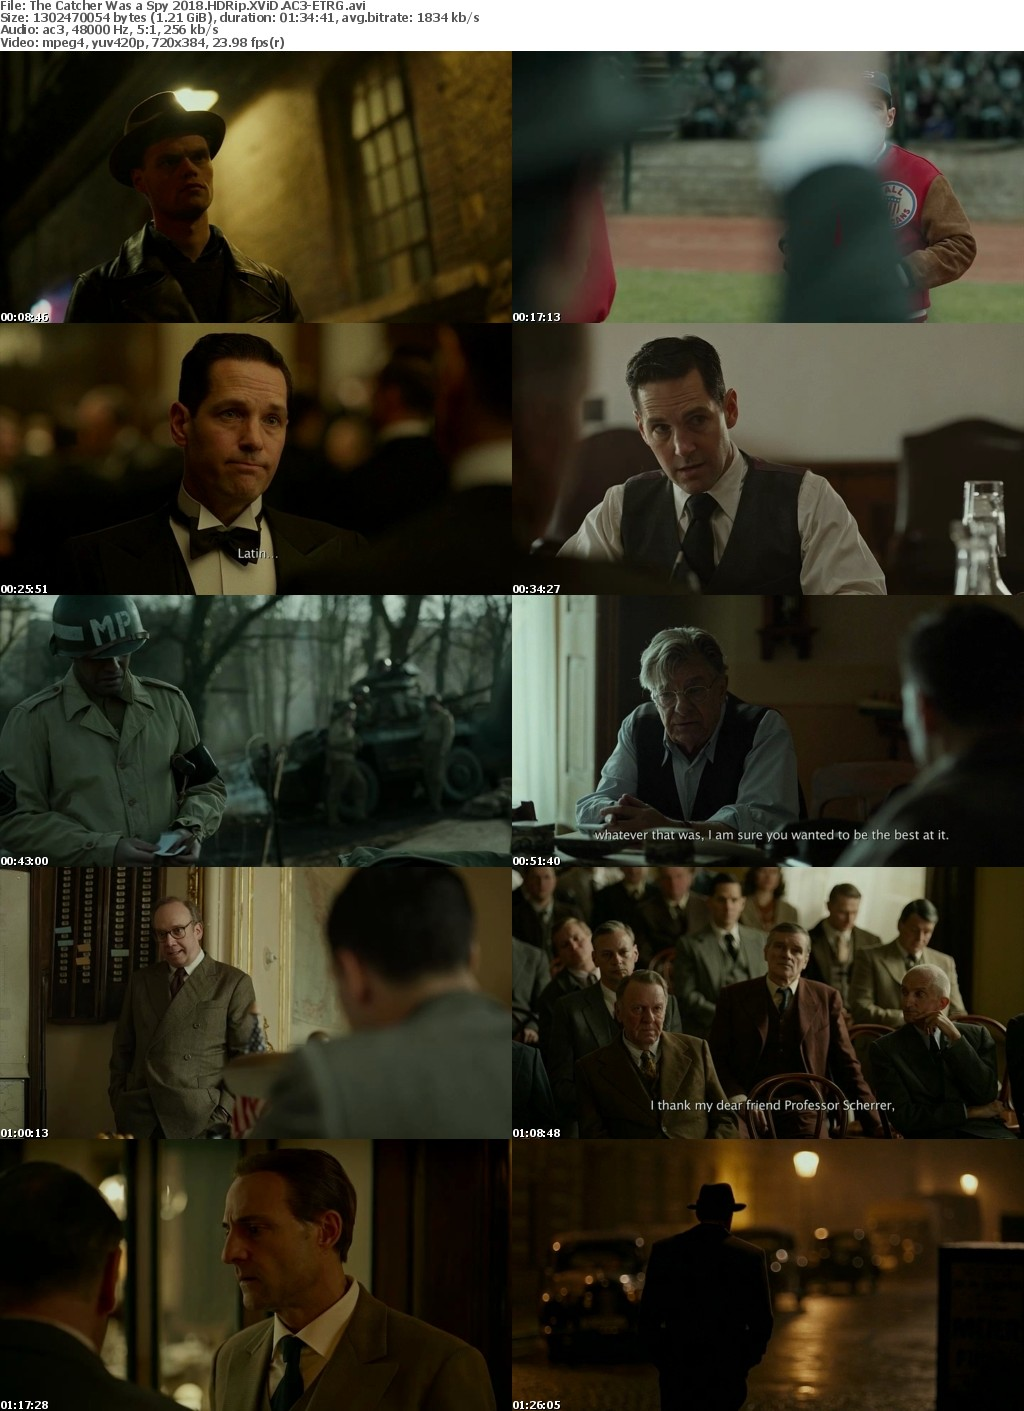 The Catcher Was a Spy (2018) HDRip XViD AC3-ETRG